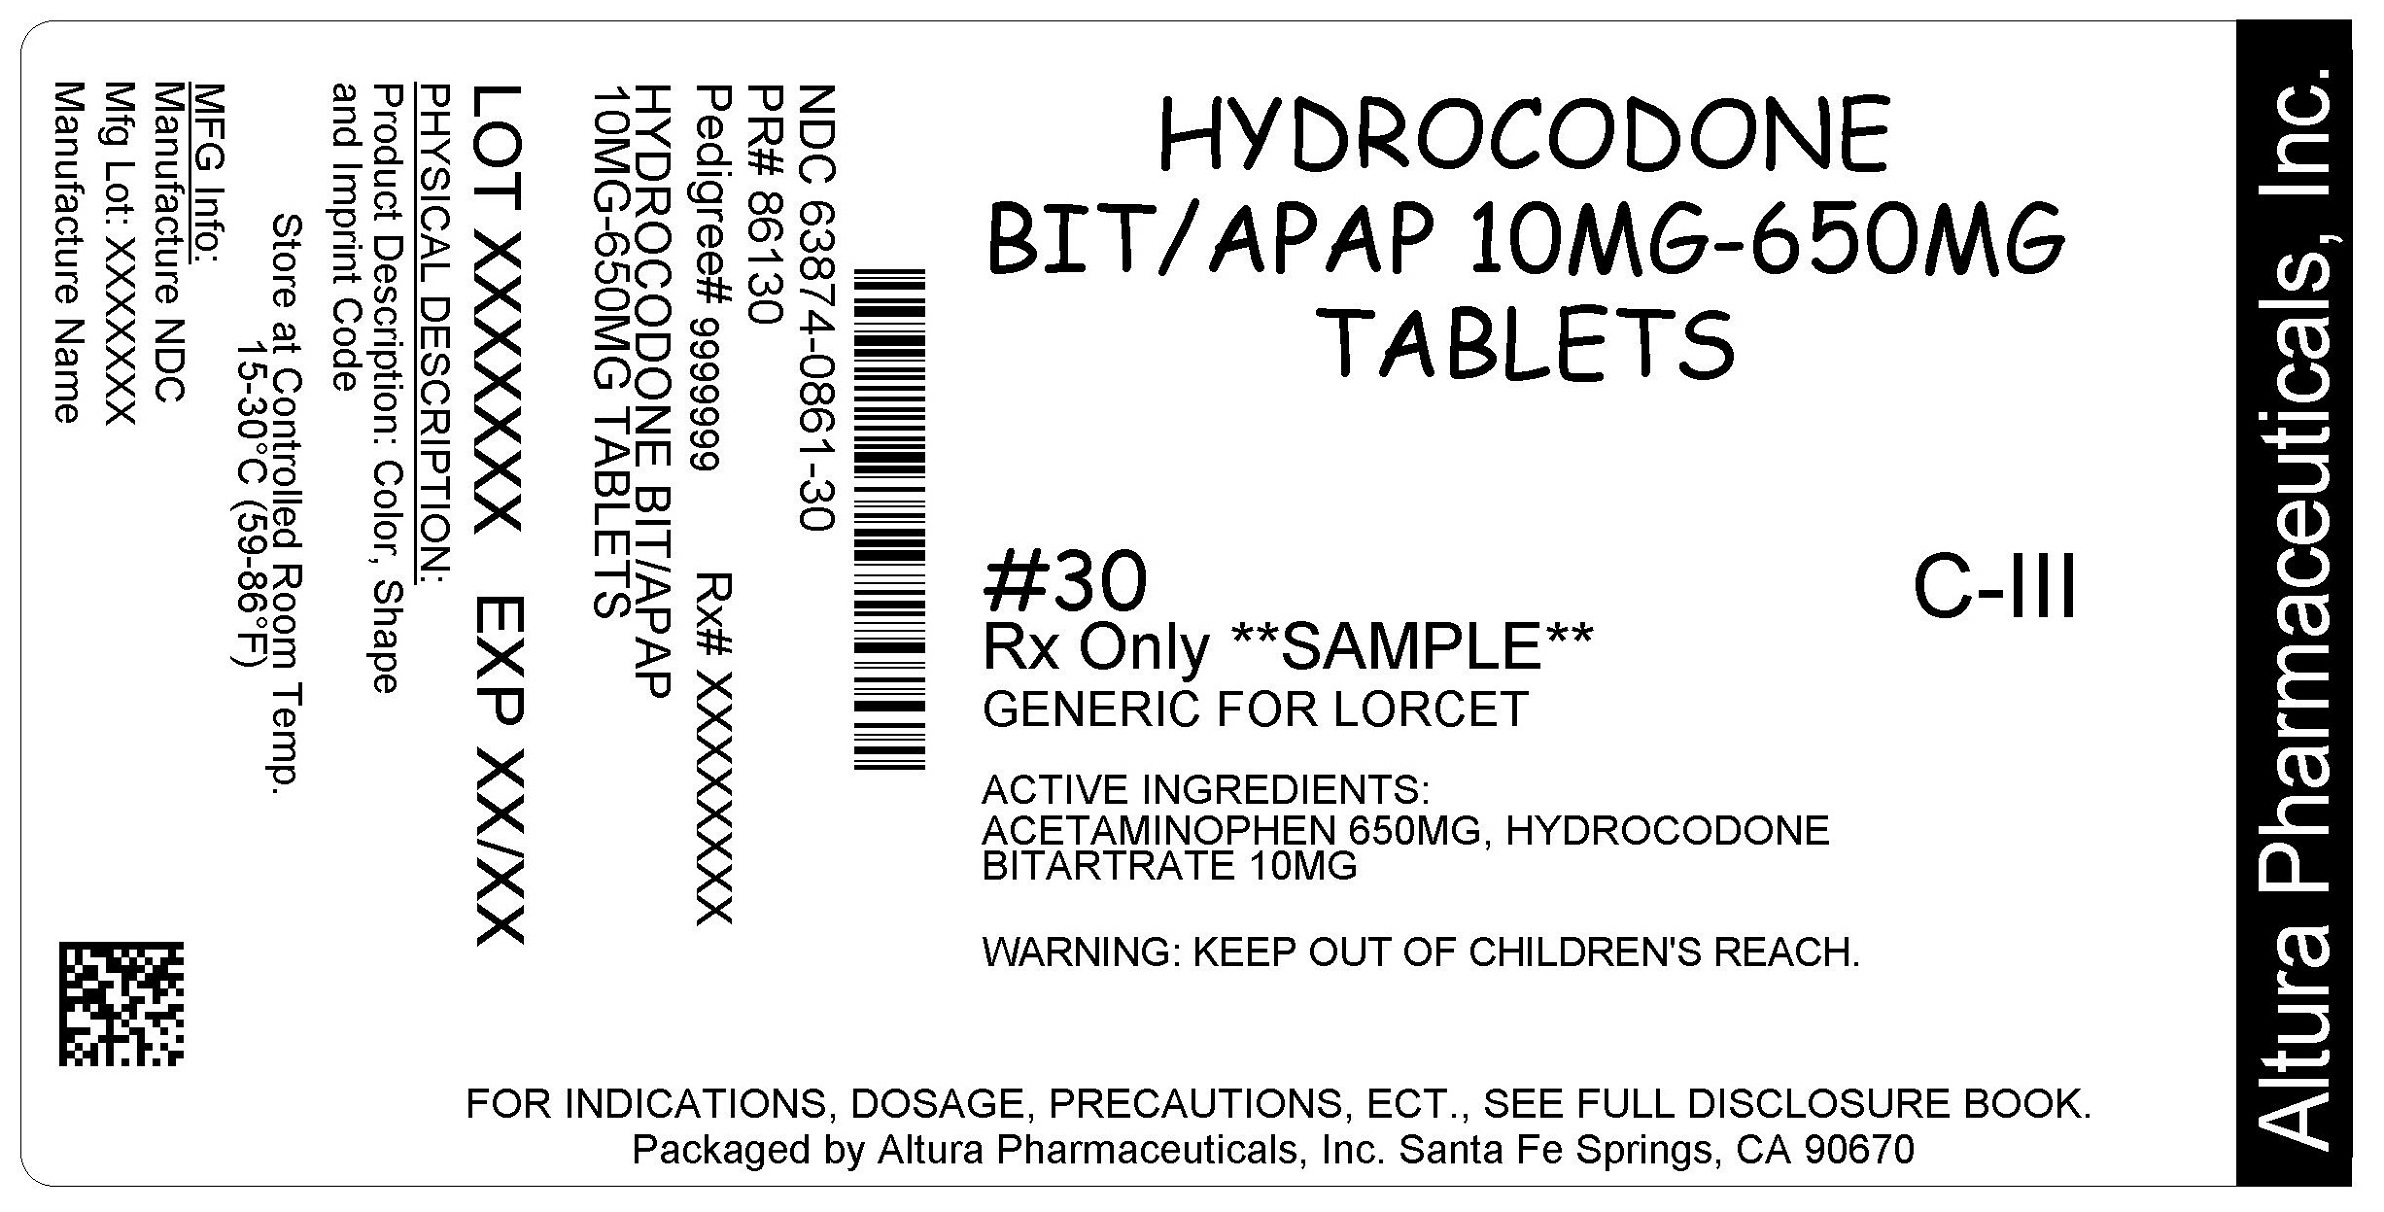 This is an image of the label for 10 mg/650 mg Hydrocodone Bitartrate and Acetaminophen Tablets.